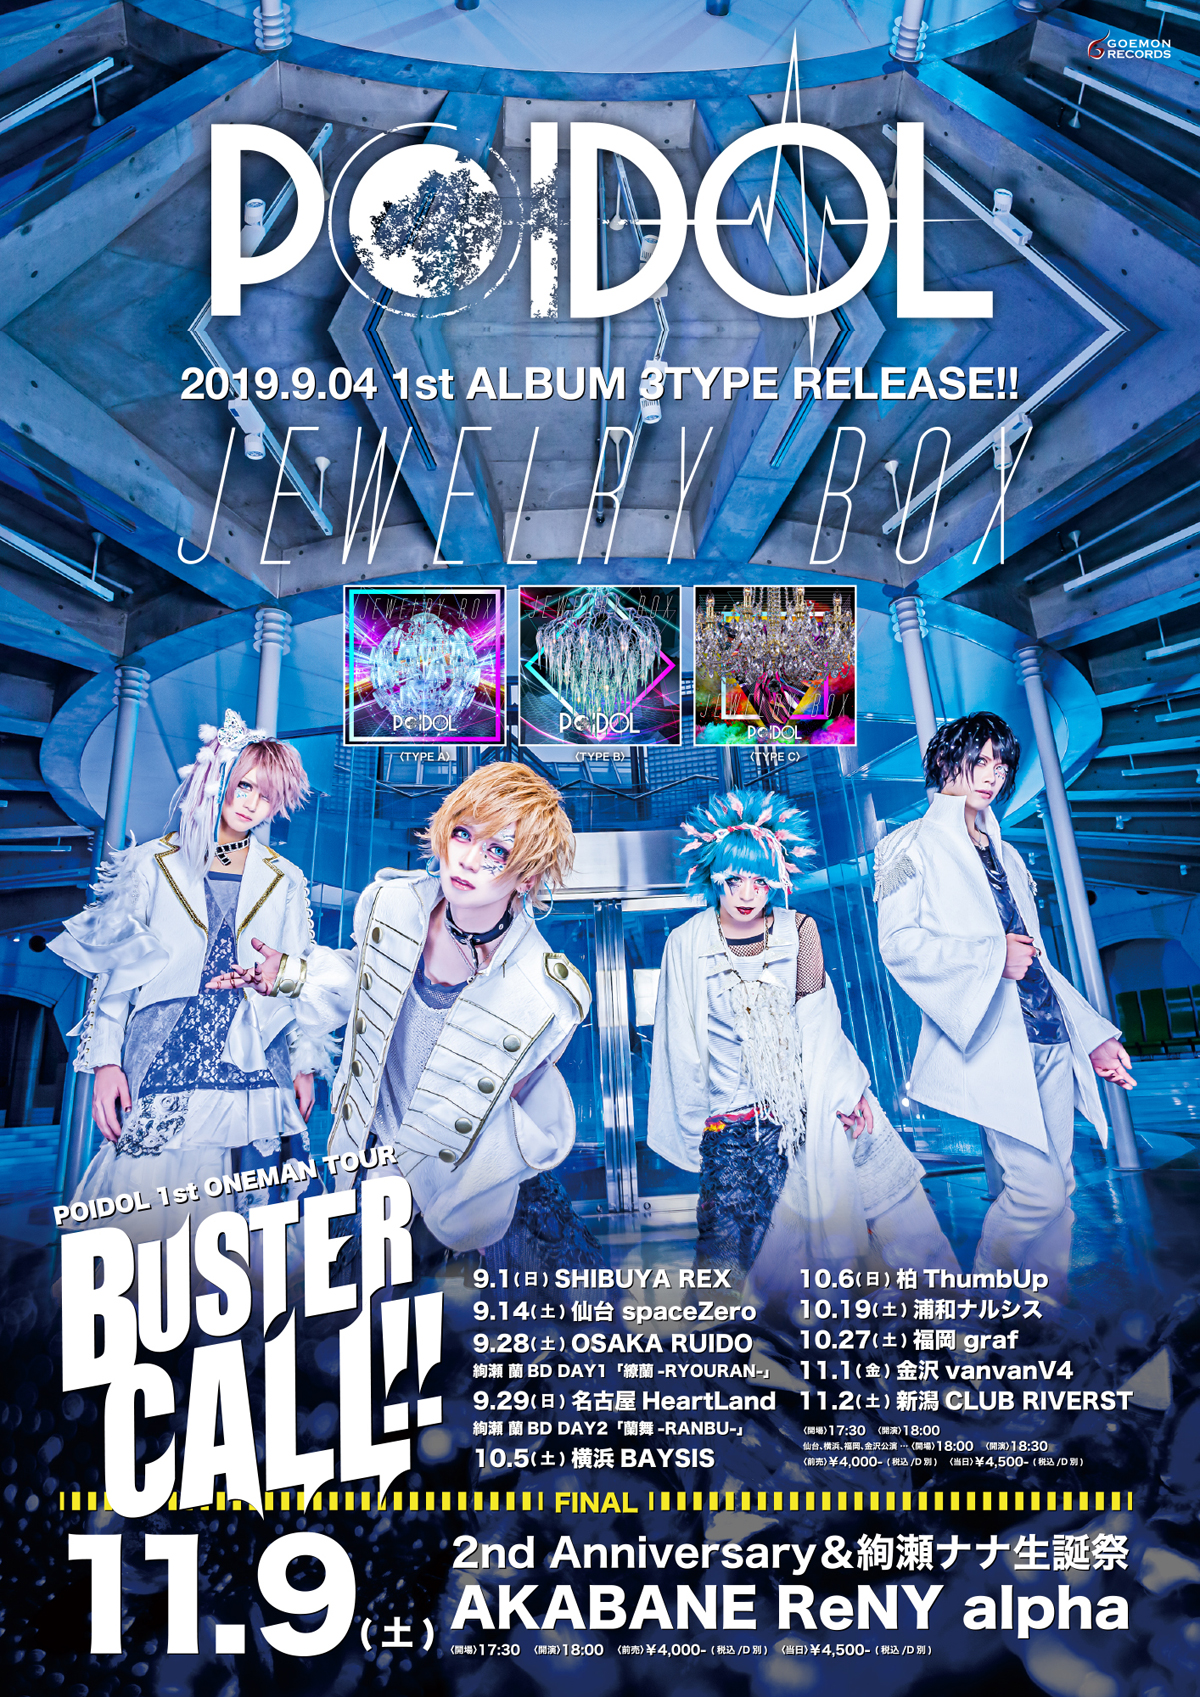 POIDOL 2019.9.04. 1st ALBUM 3TYPE RELEASE!! JEWELRY BOX / POIDOL 1st ONEMAN TOUR BUSTER CALL!! 11.9(土) 2nd Anniversary&綾瀬ナナ生誕祭 AKABANE ReNY alpha